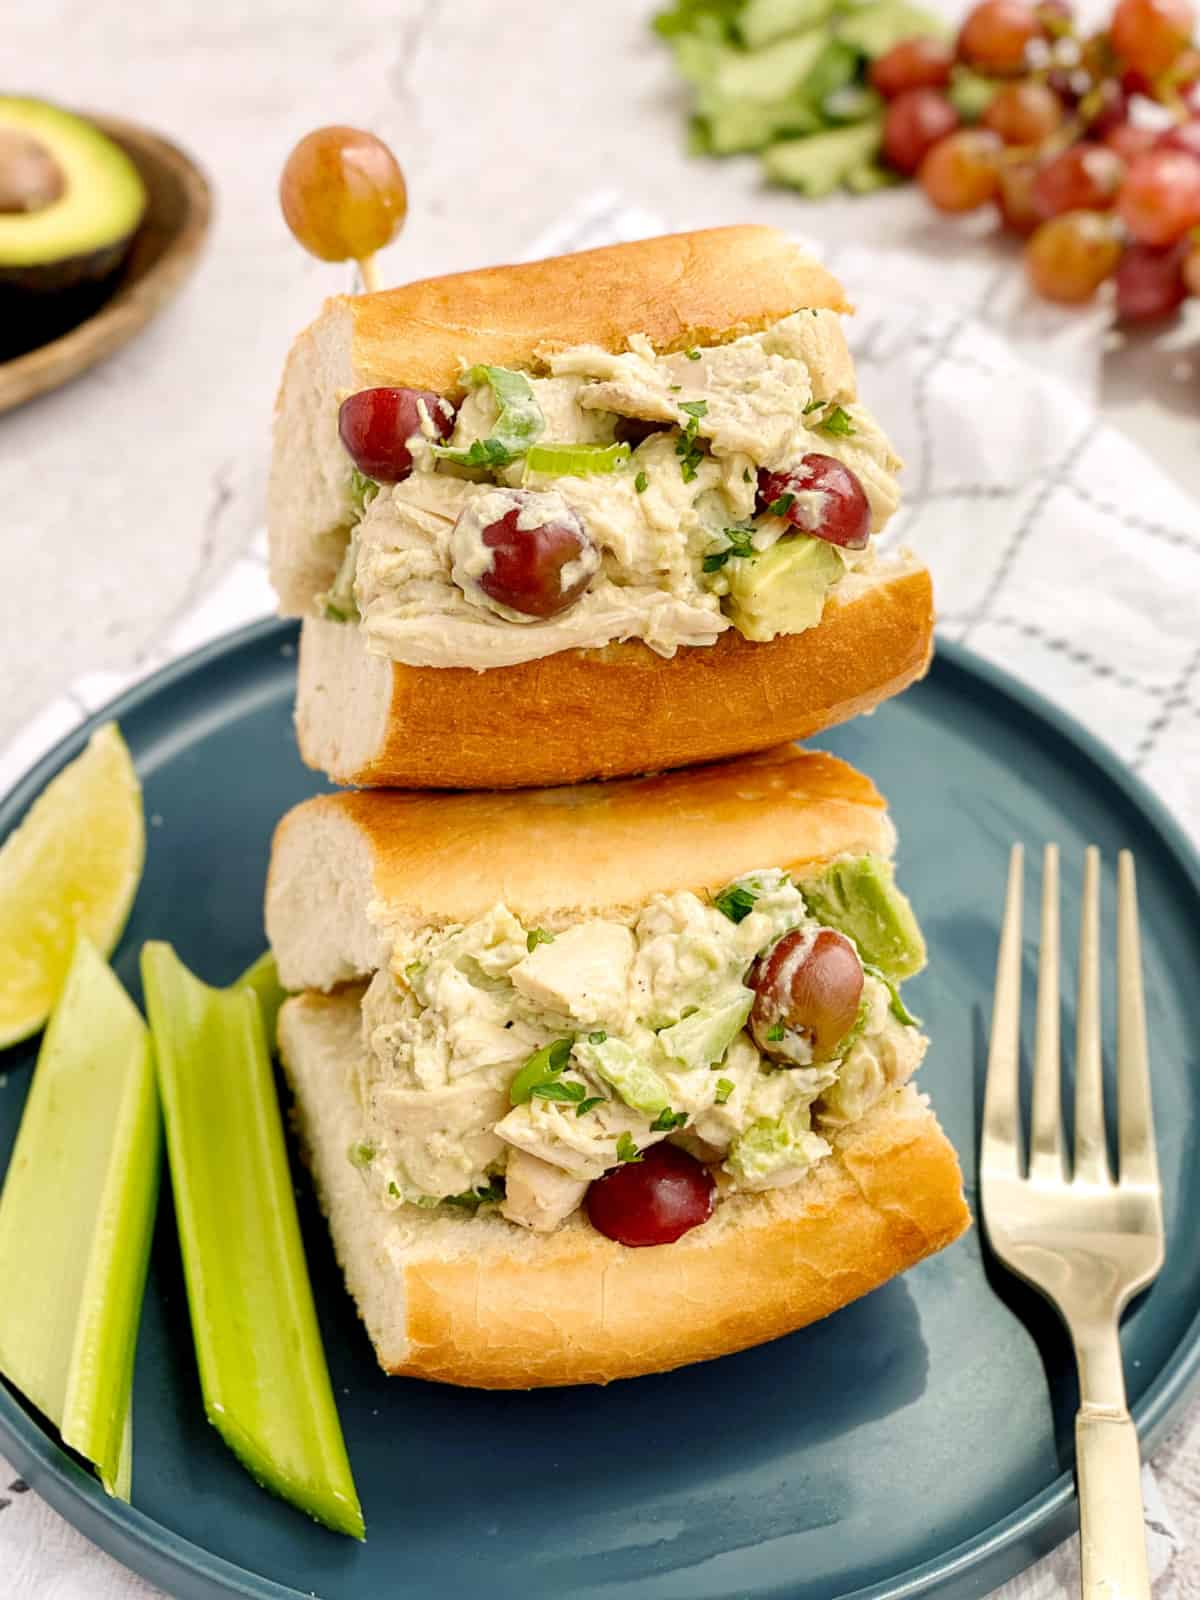 bread chicken salad on a plate